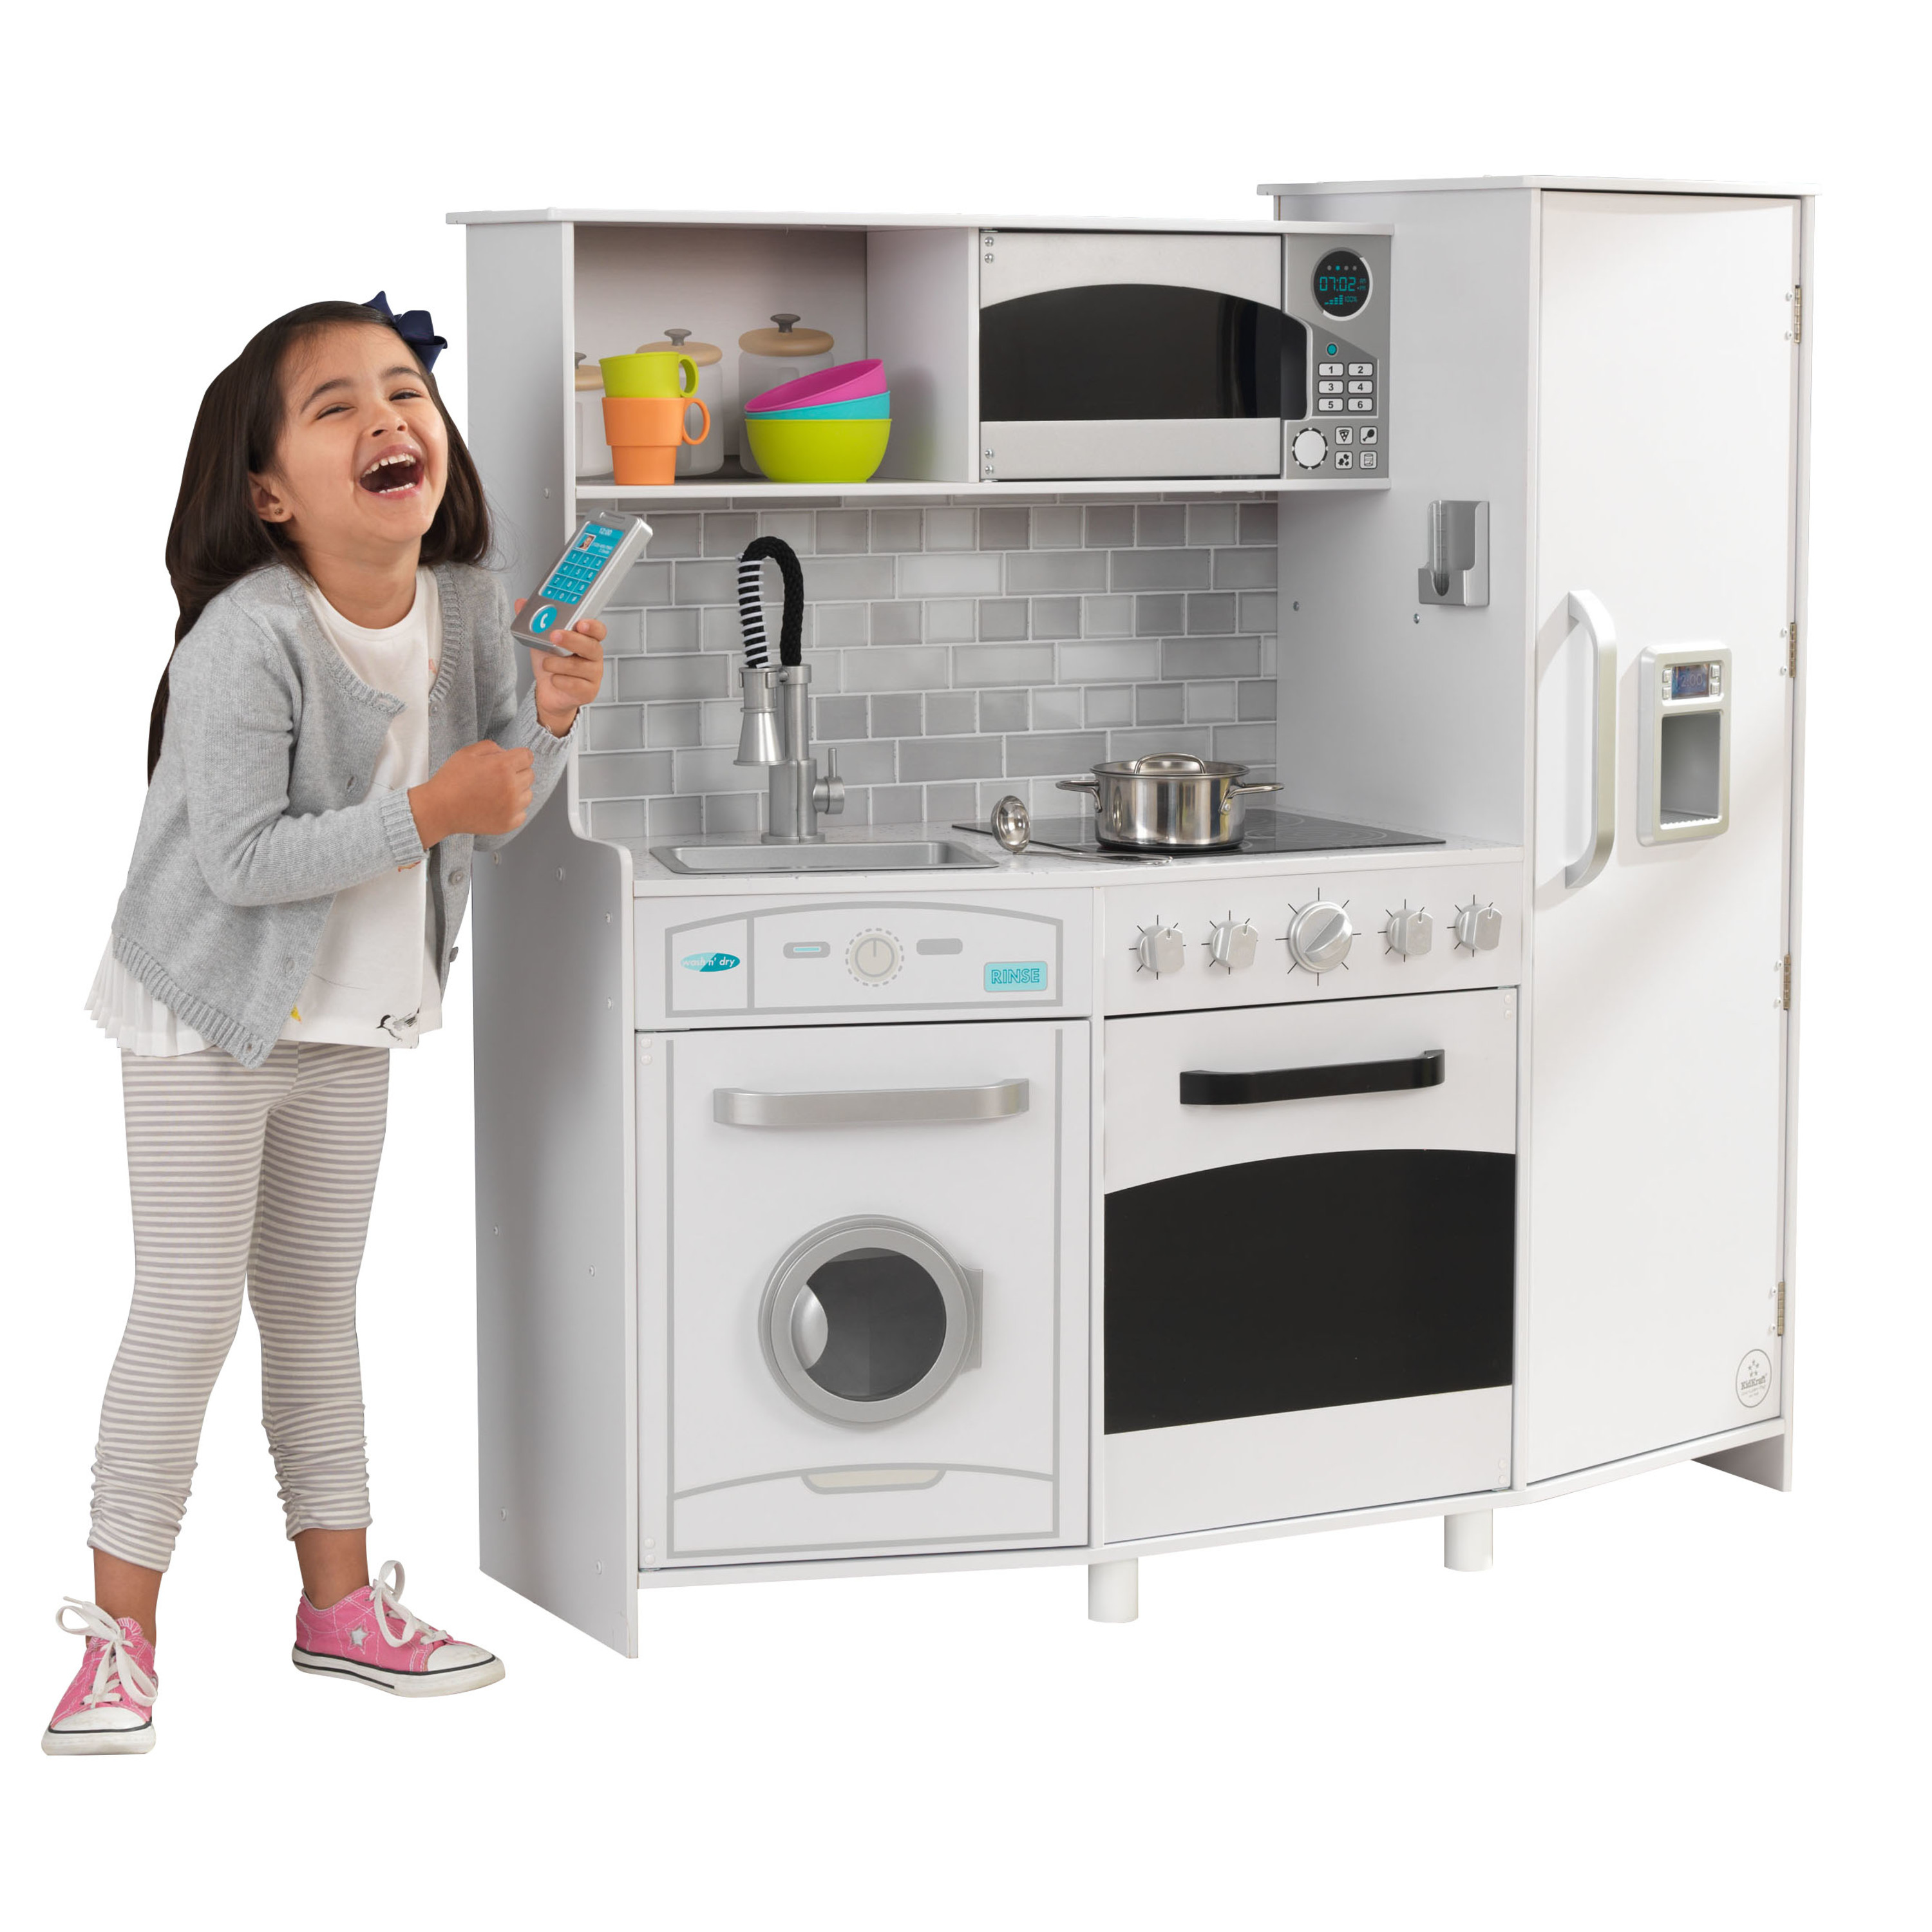 Large Play Kitchen with Lights & Sounds in White by KidKraft